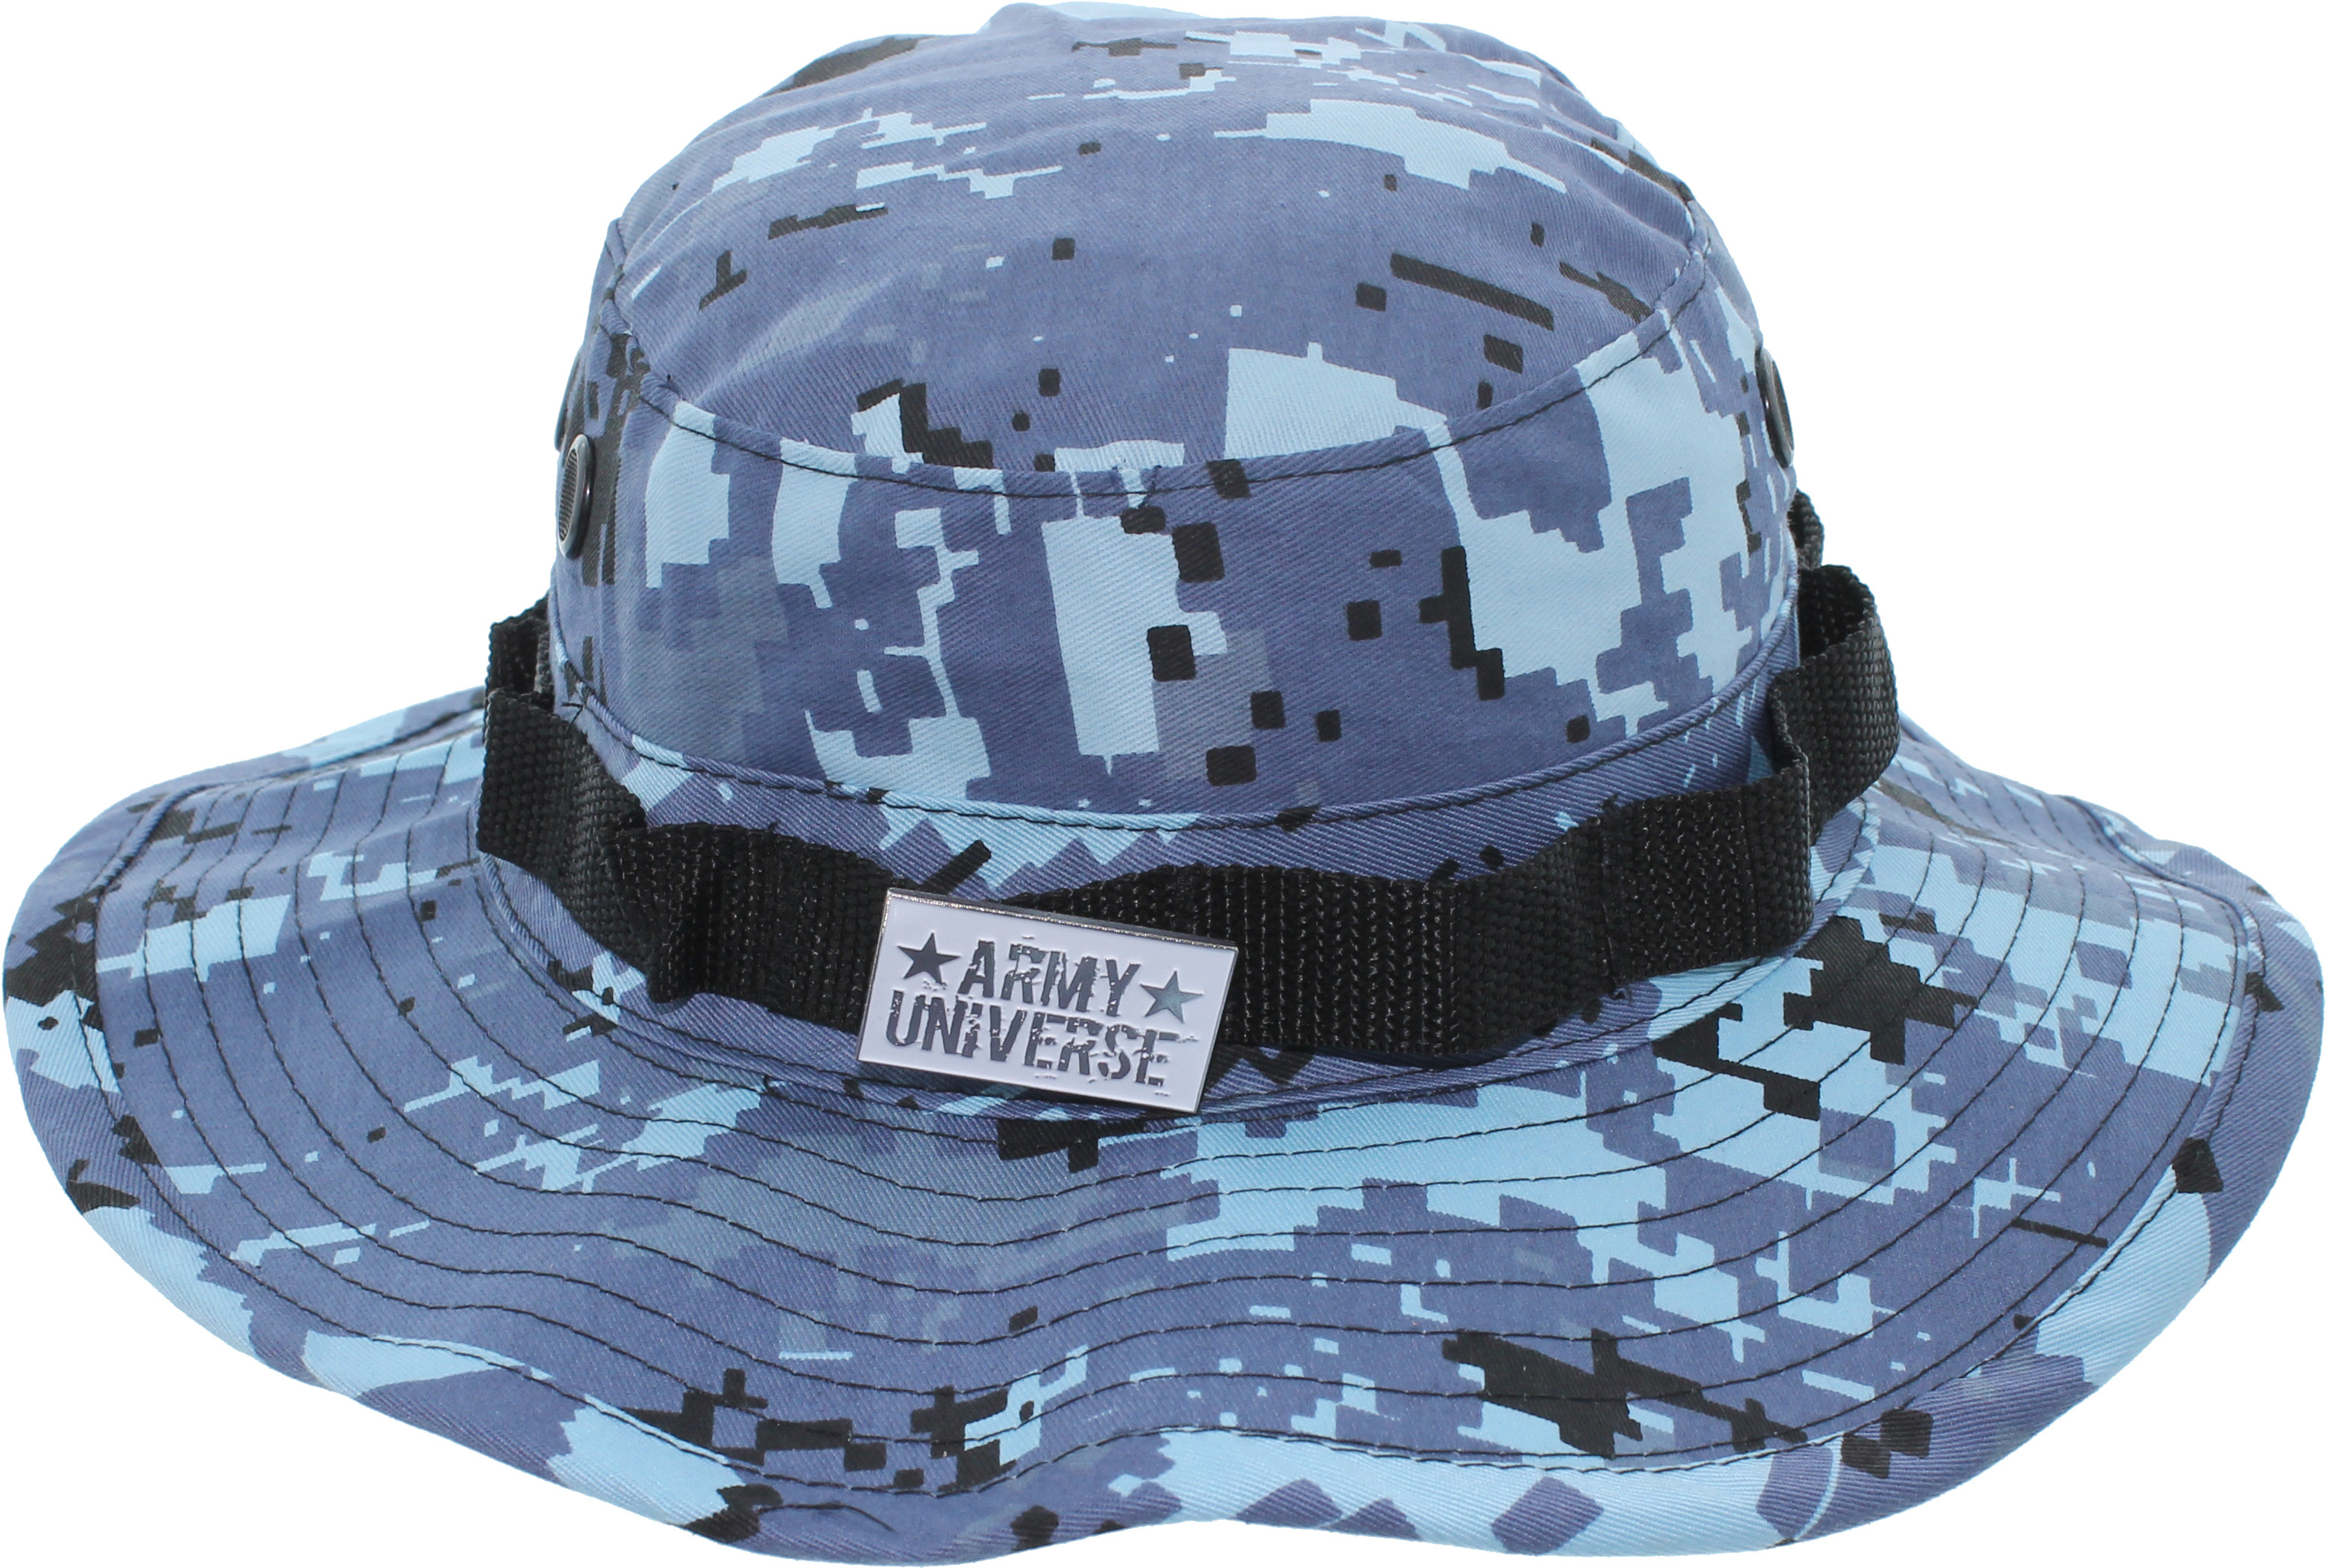 19b0b84081f36 ... Light Blue Digital Camouflage Boonie Hat with ARMY UNIVERSE Pin ...